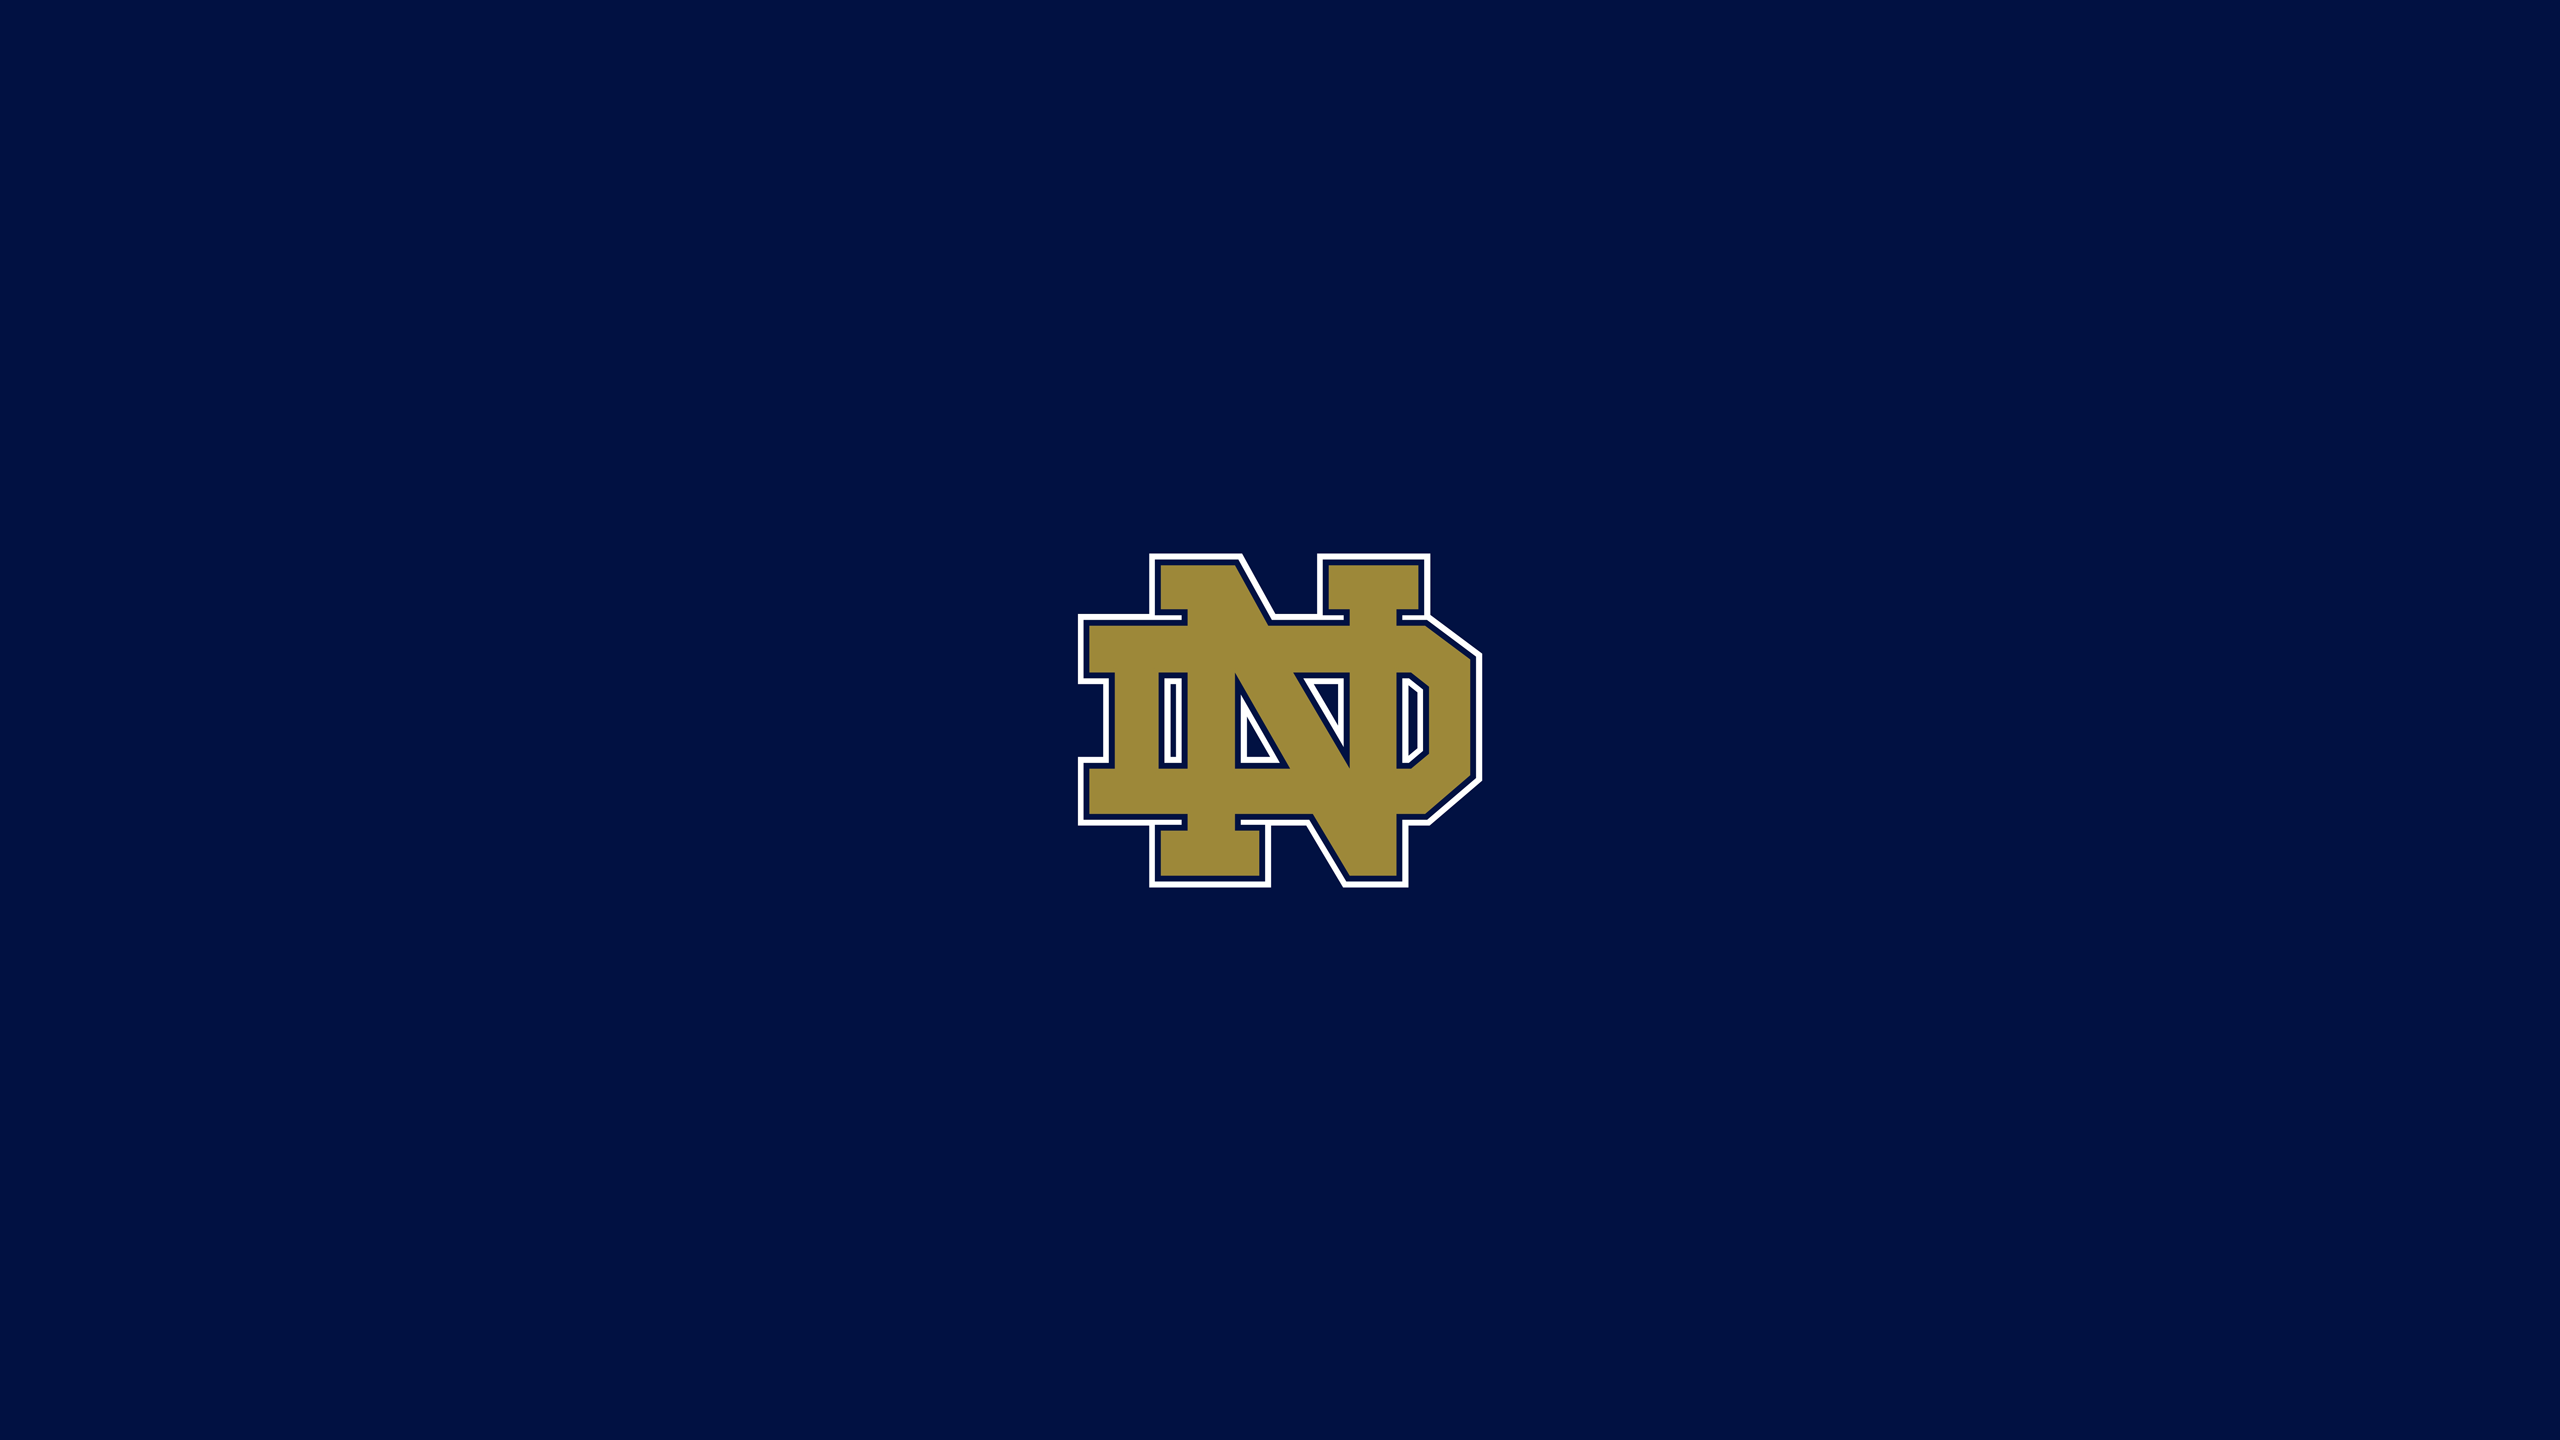 Beautiful Wallpaper Football Cowboys - notre-dame-wallpaper-4  Trends_9495 .jpg